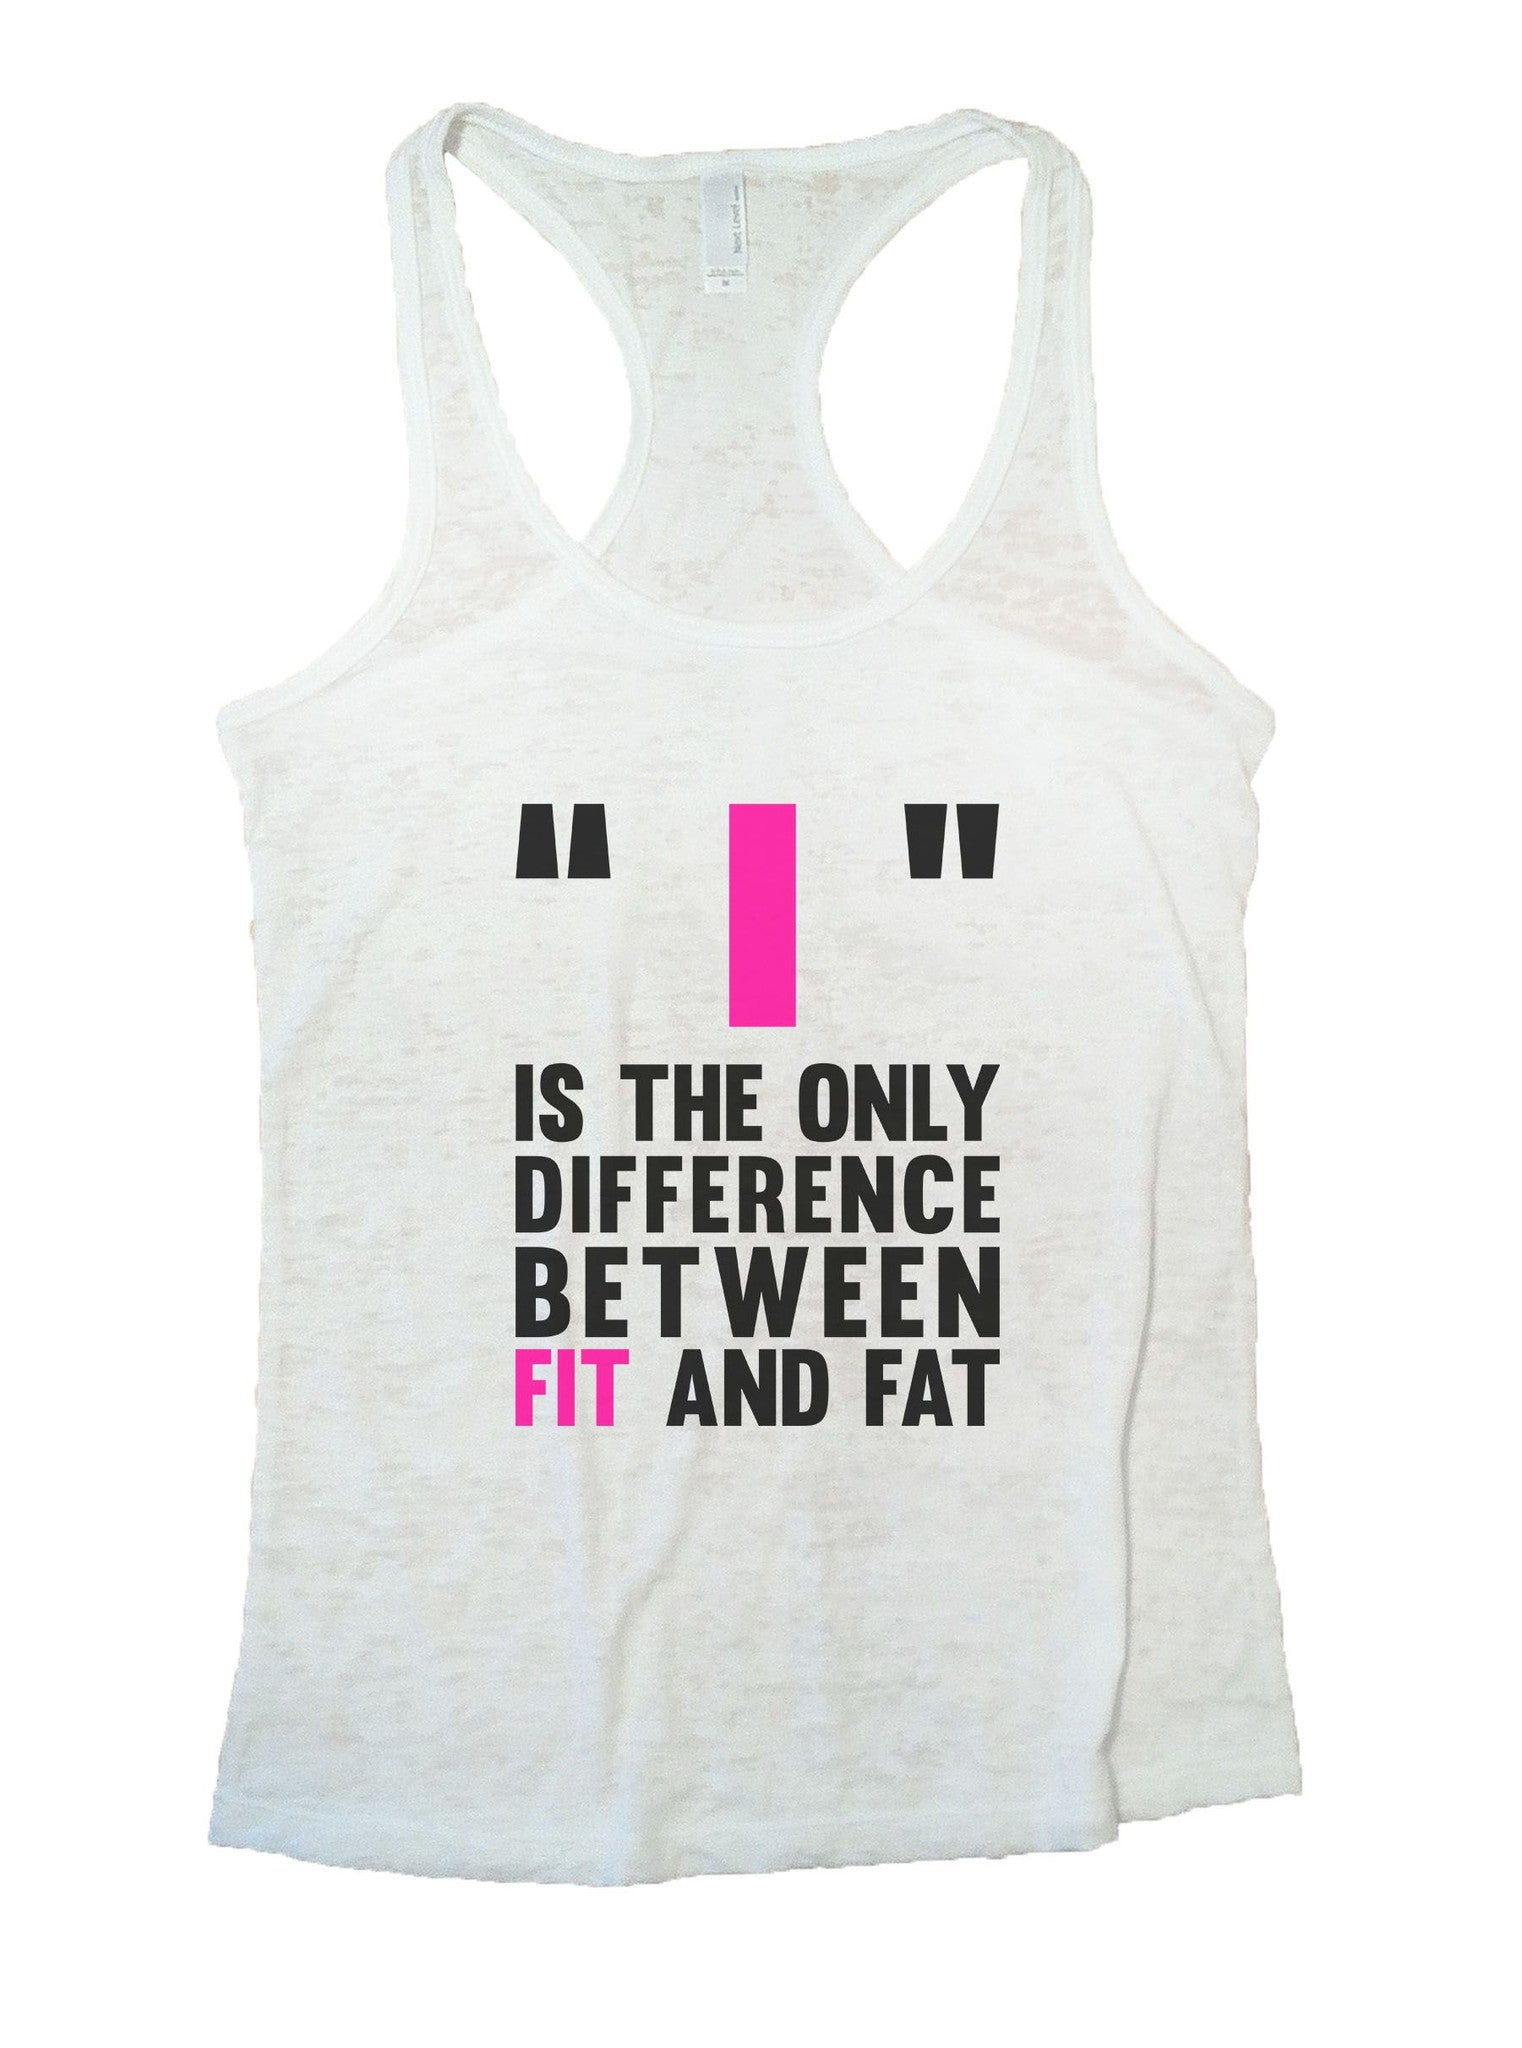 Is The Only Difference Between Fit And Fat Burnout Tank Top By BurnoutTankTops.com - 878 - Funny Shirts Tank Tops Burnouts and Triblends  - 6